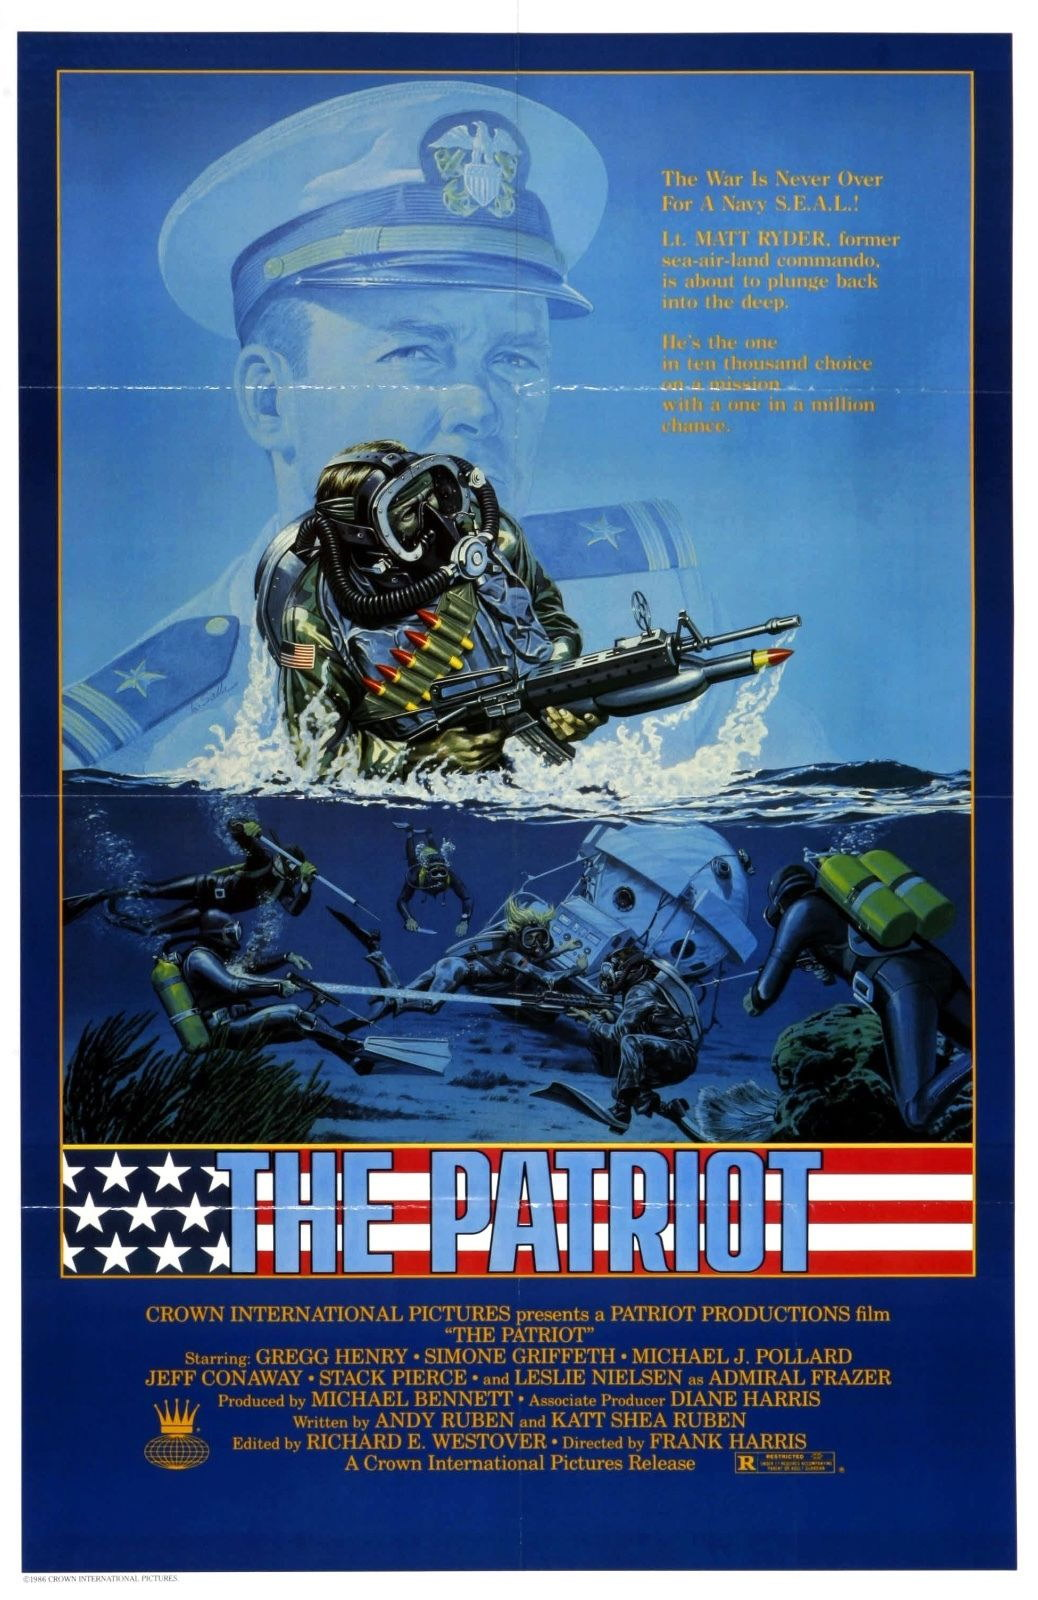 73849-The-Patriot-Movie-1986-Drama-Action-Wall-Print-Poster-Affiche